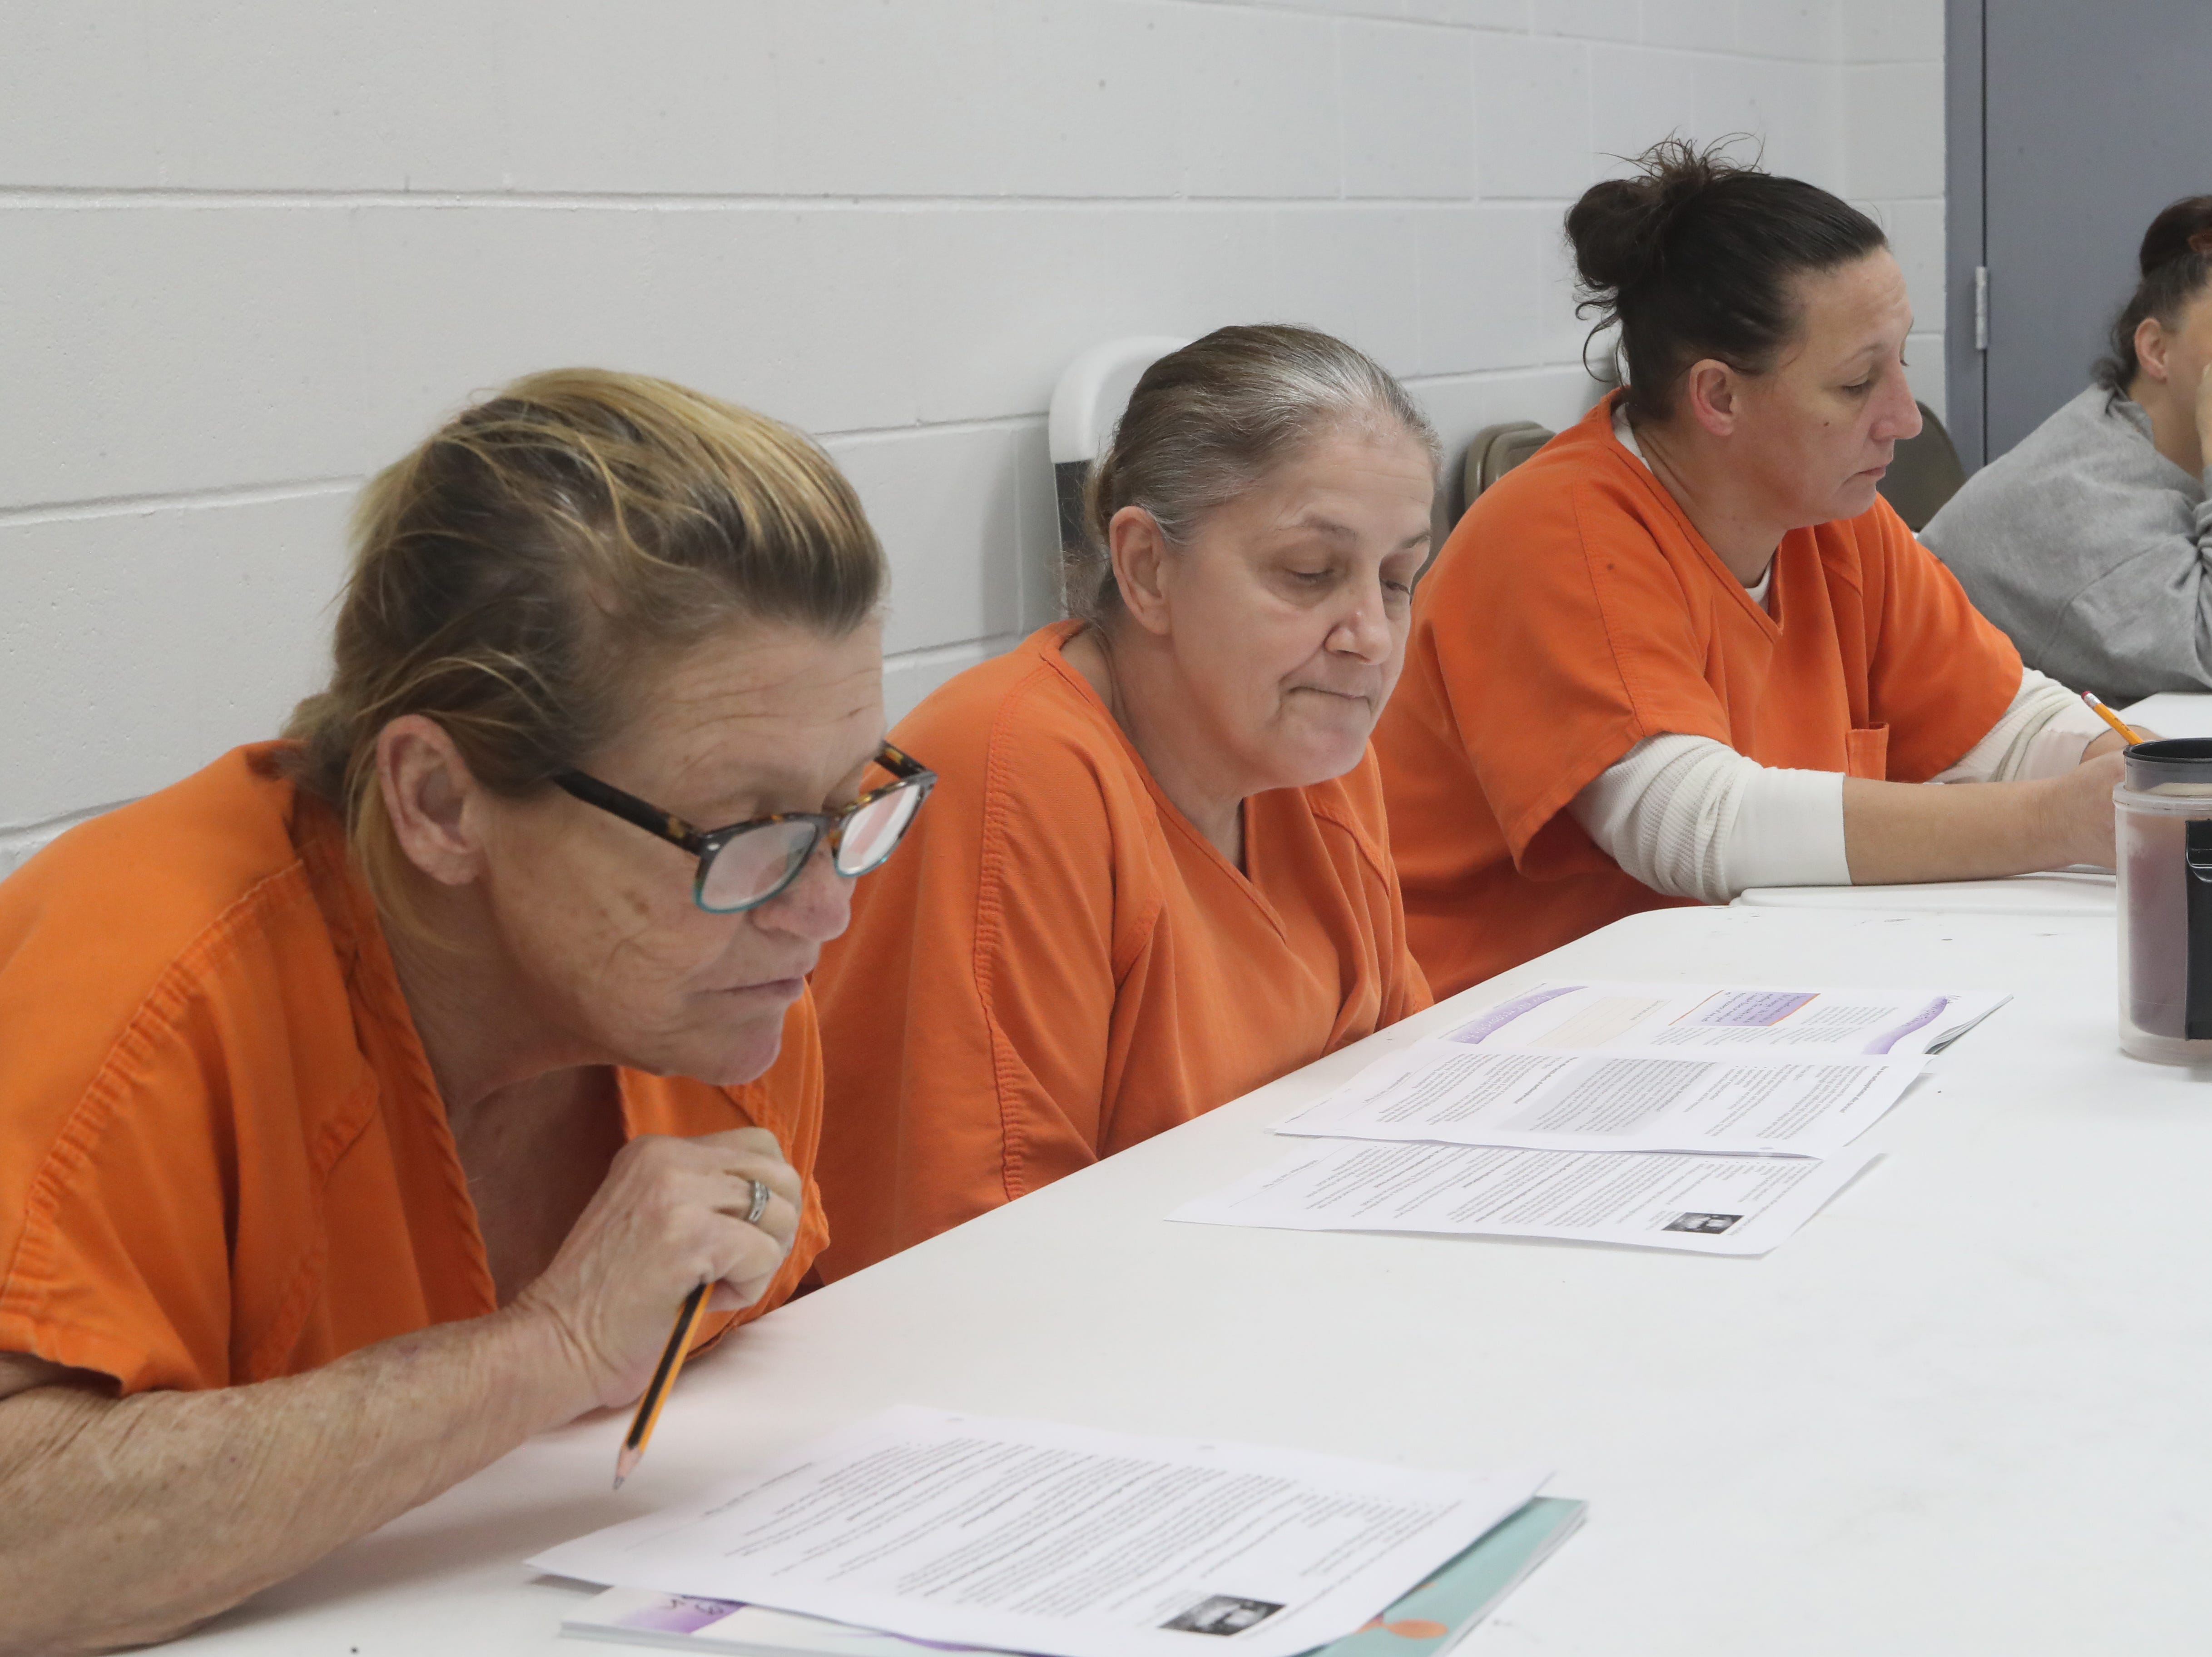 Donna Needer, Tina Davis, Tonya Seamon and Amy Anderson, inmates at the Franklin County Jail listen during a substance abuse counseling class by DISC Village at the jail in Eastpoint, Fla. Thursday, Oct. 27, 2018.